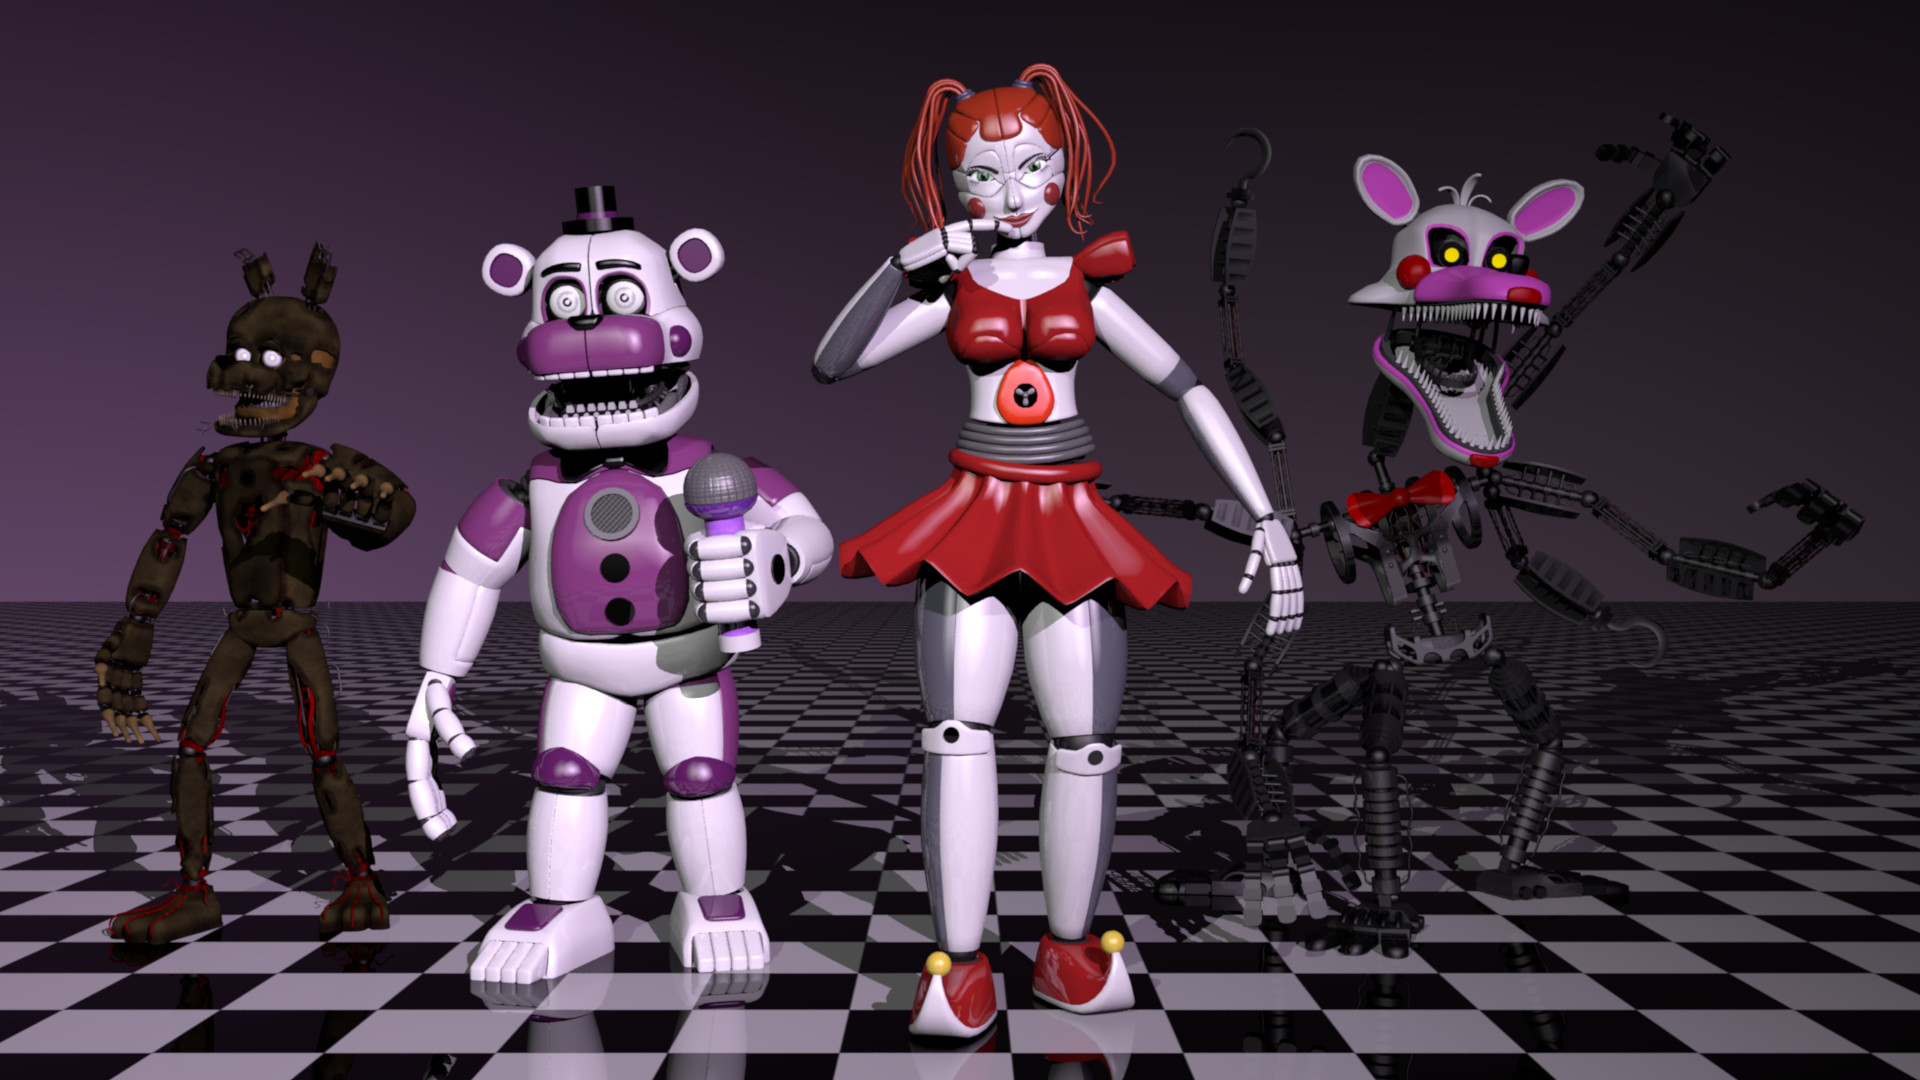 ArtStation - Five Nights at Freddy's: The Fourth Closet Fan-Made 3D